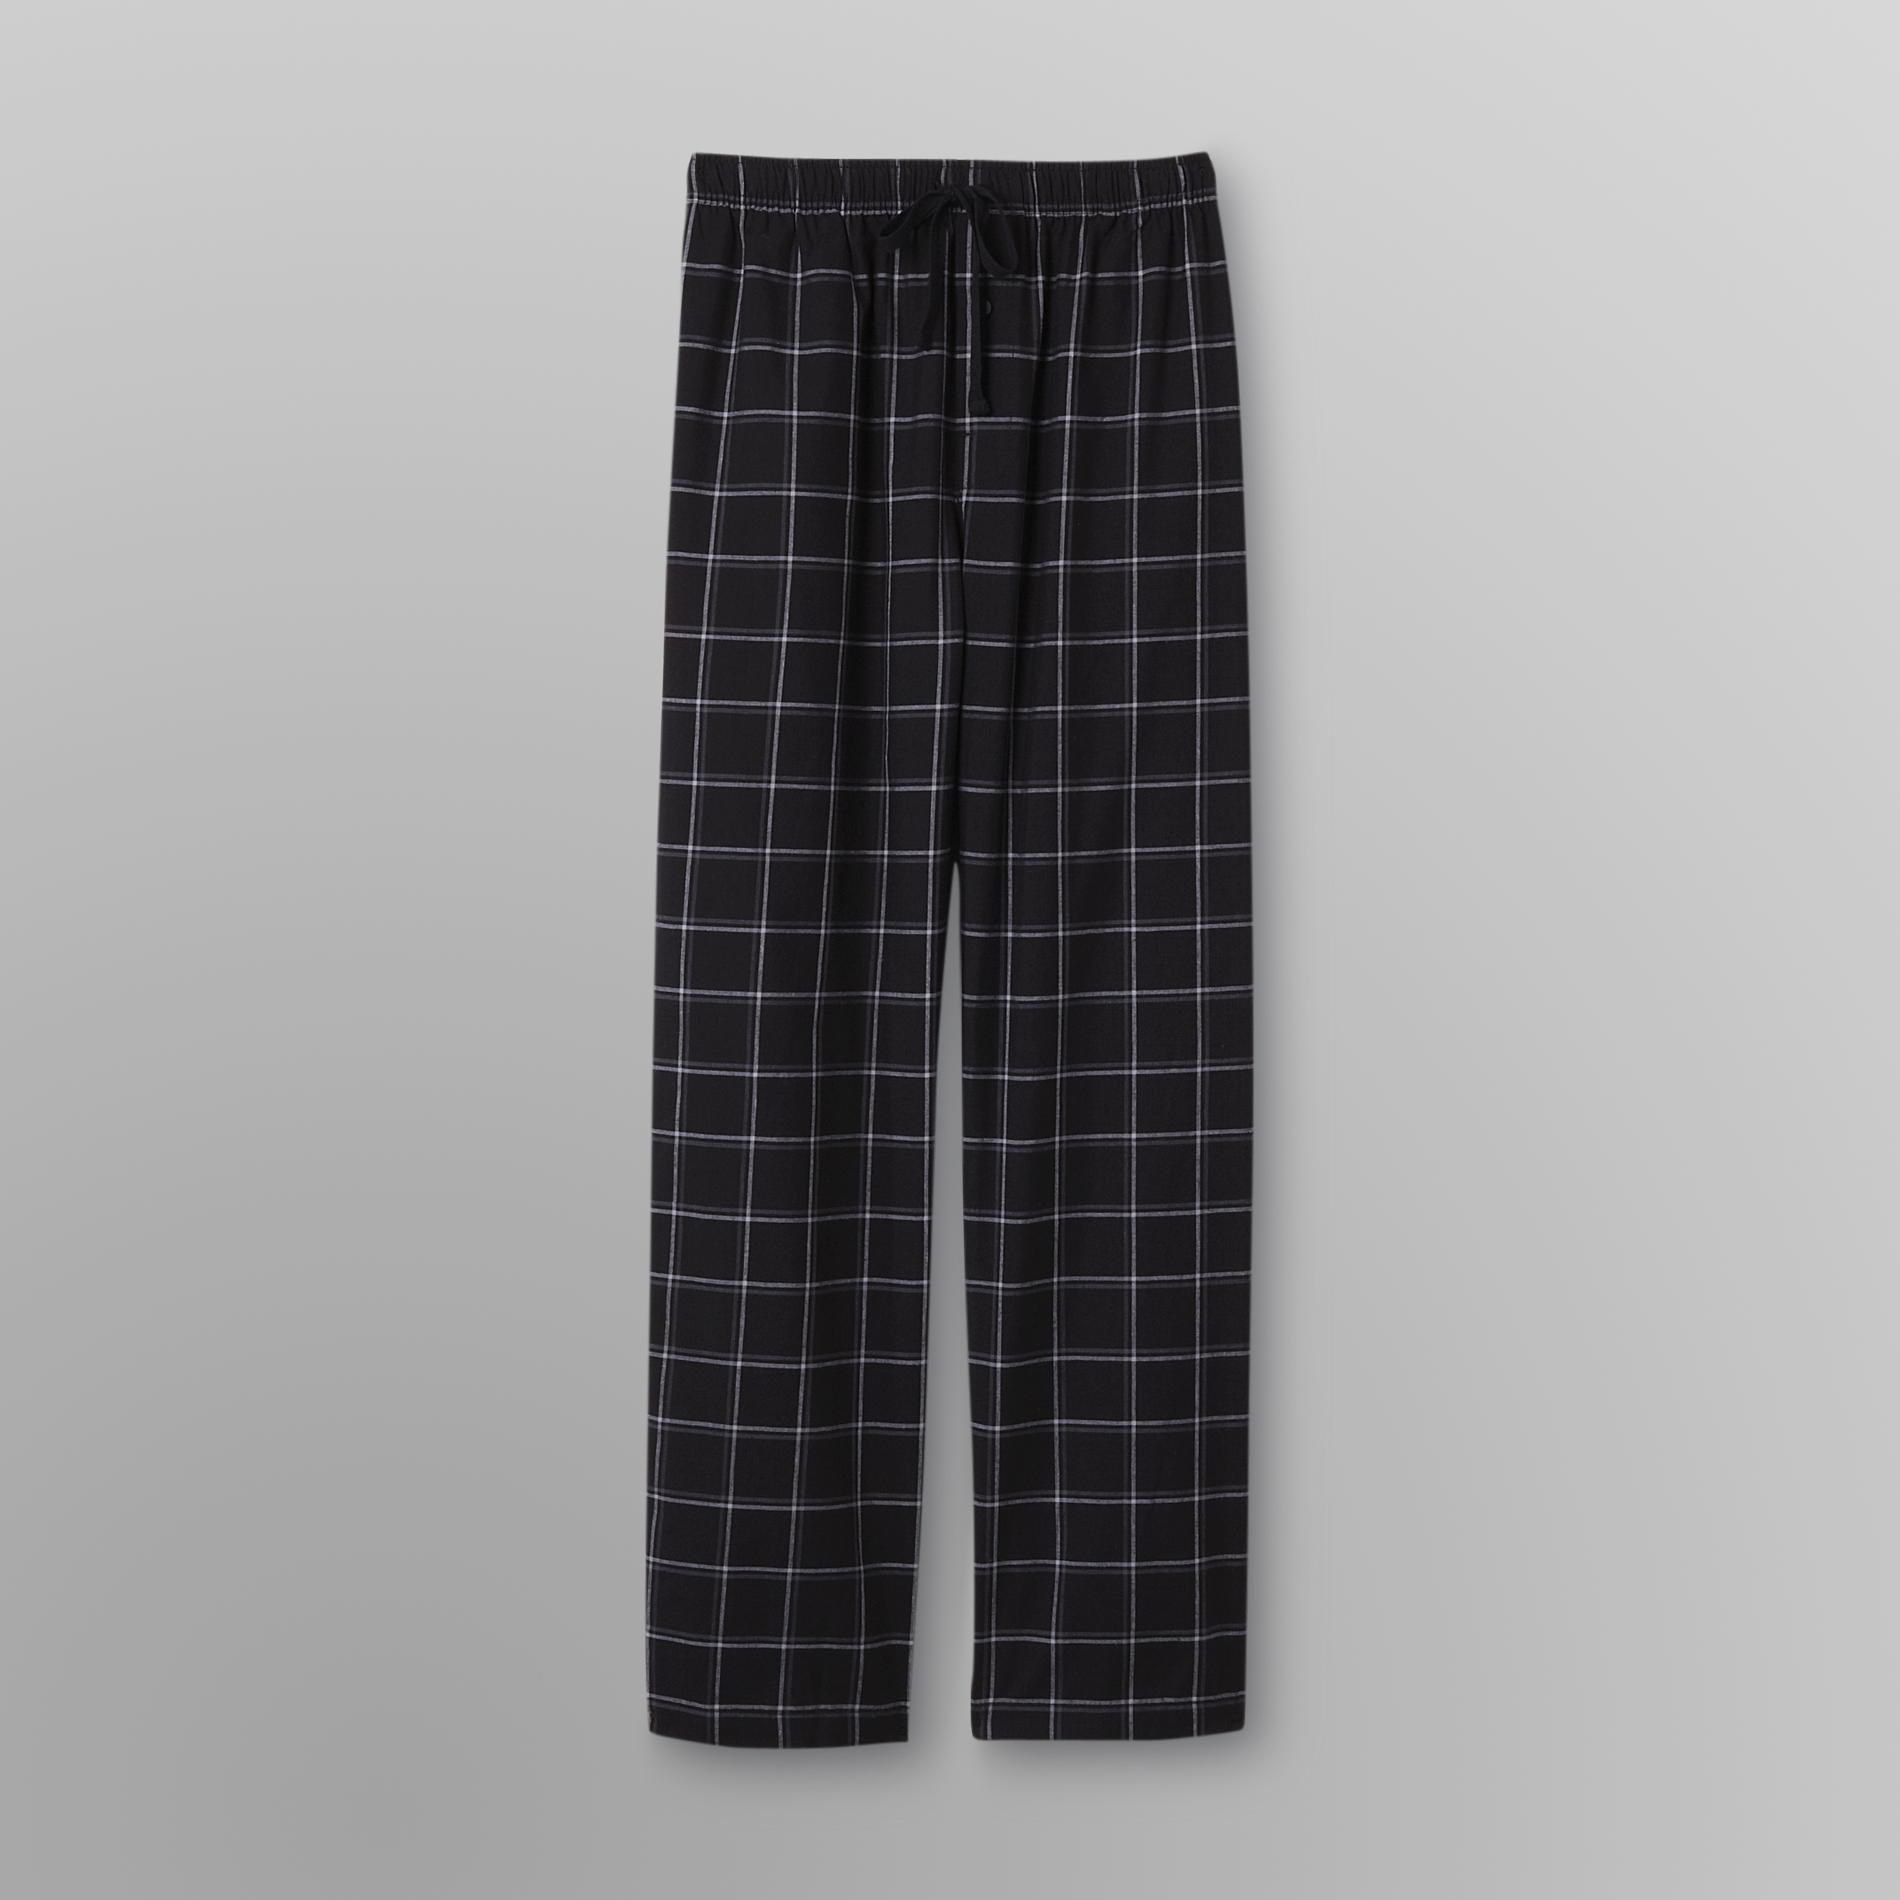 Basic Editions Men's Poplin Pajama Pants - Plaid at Kmart.com